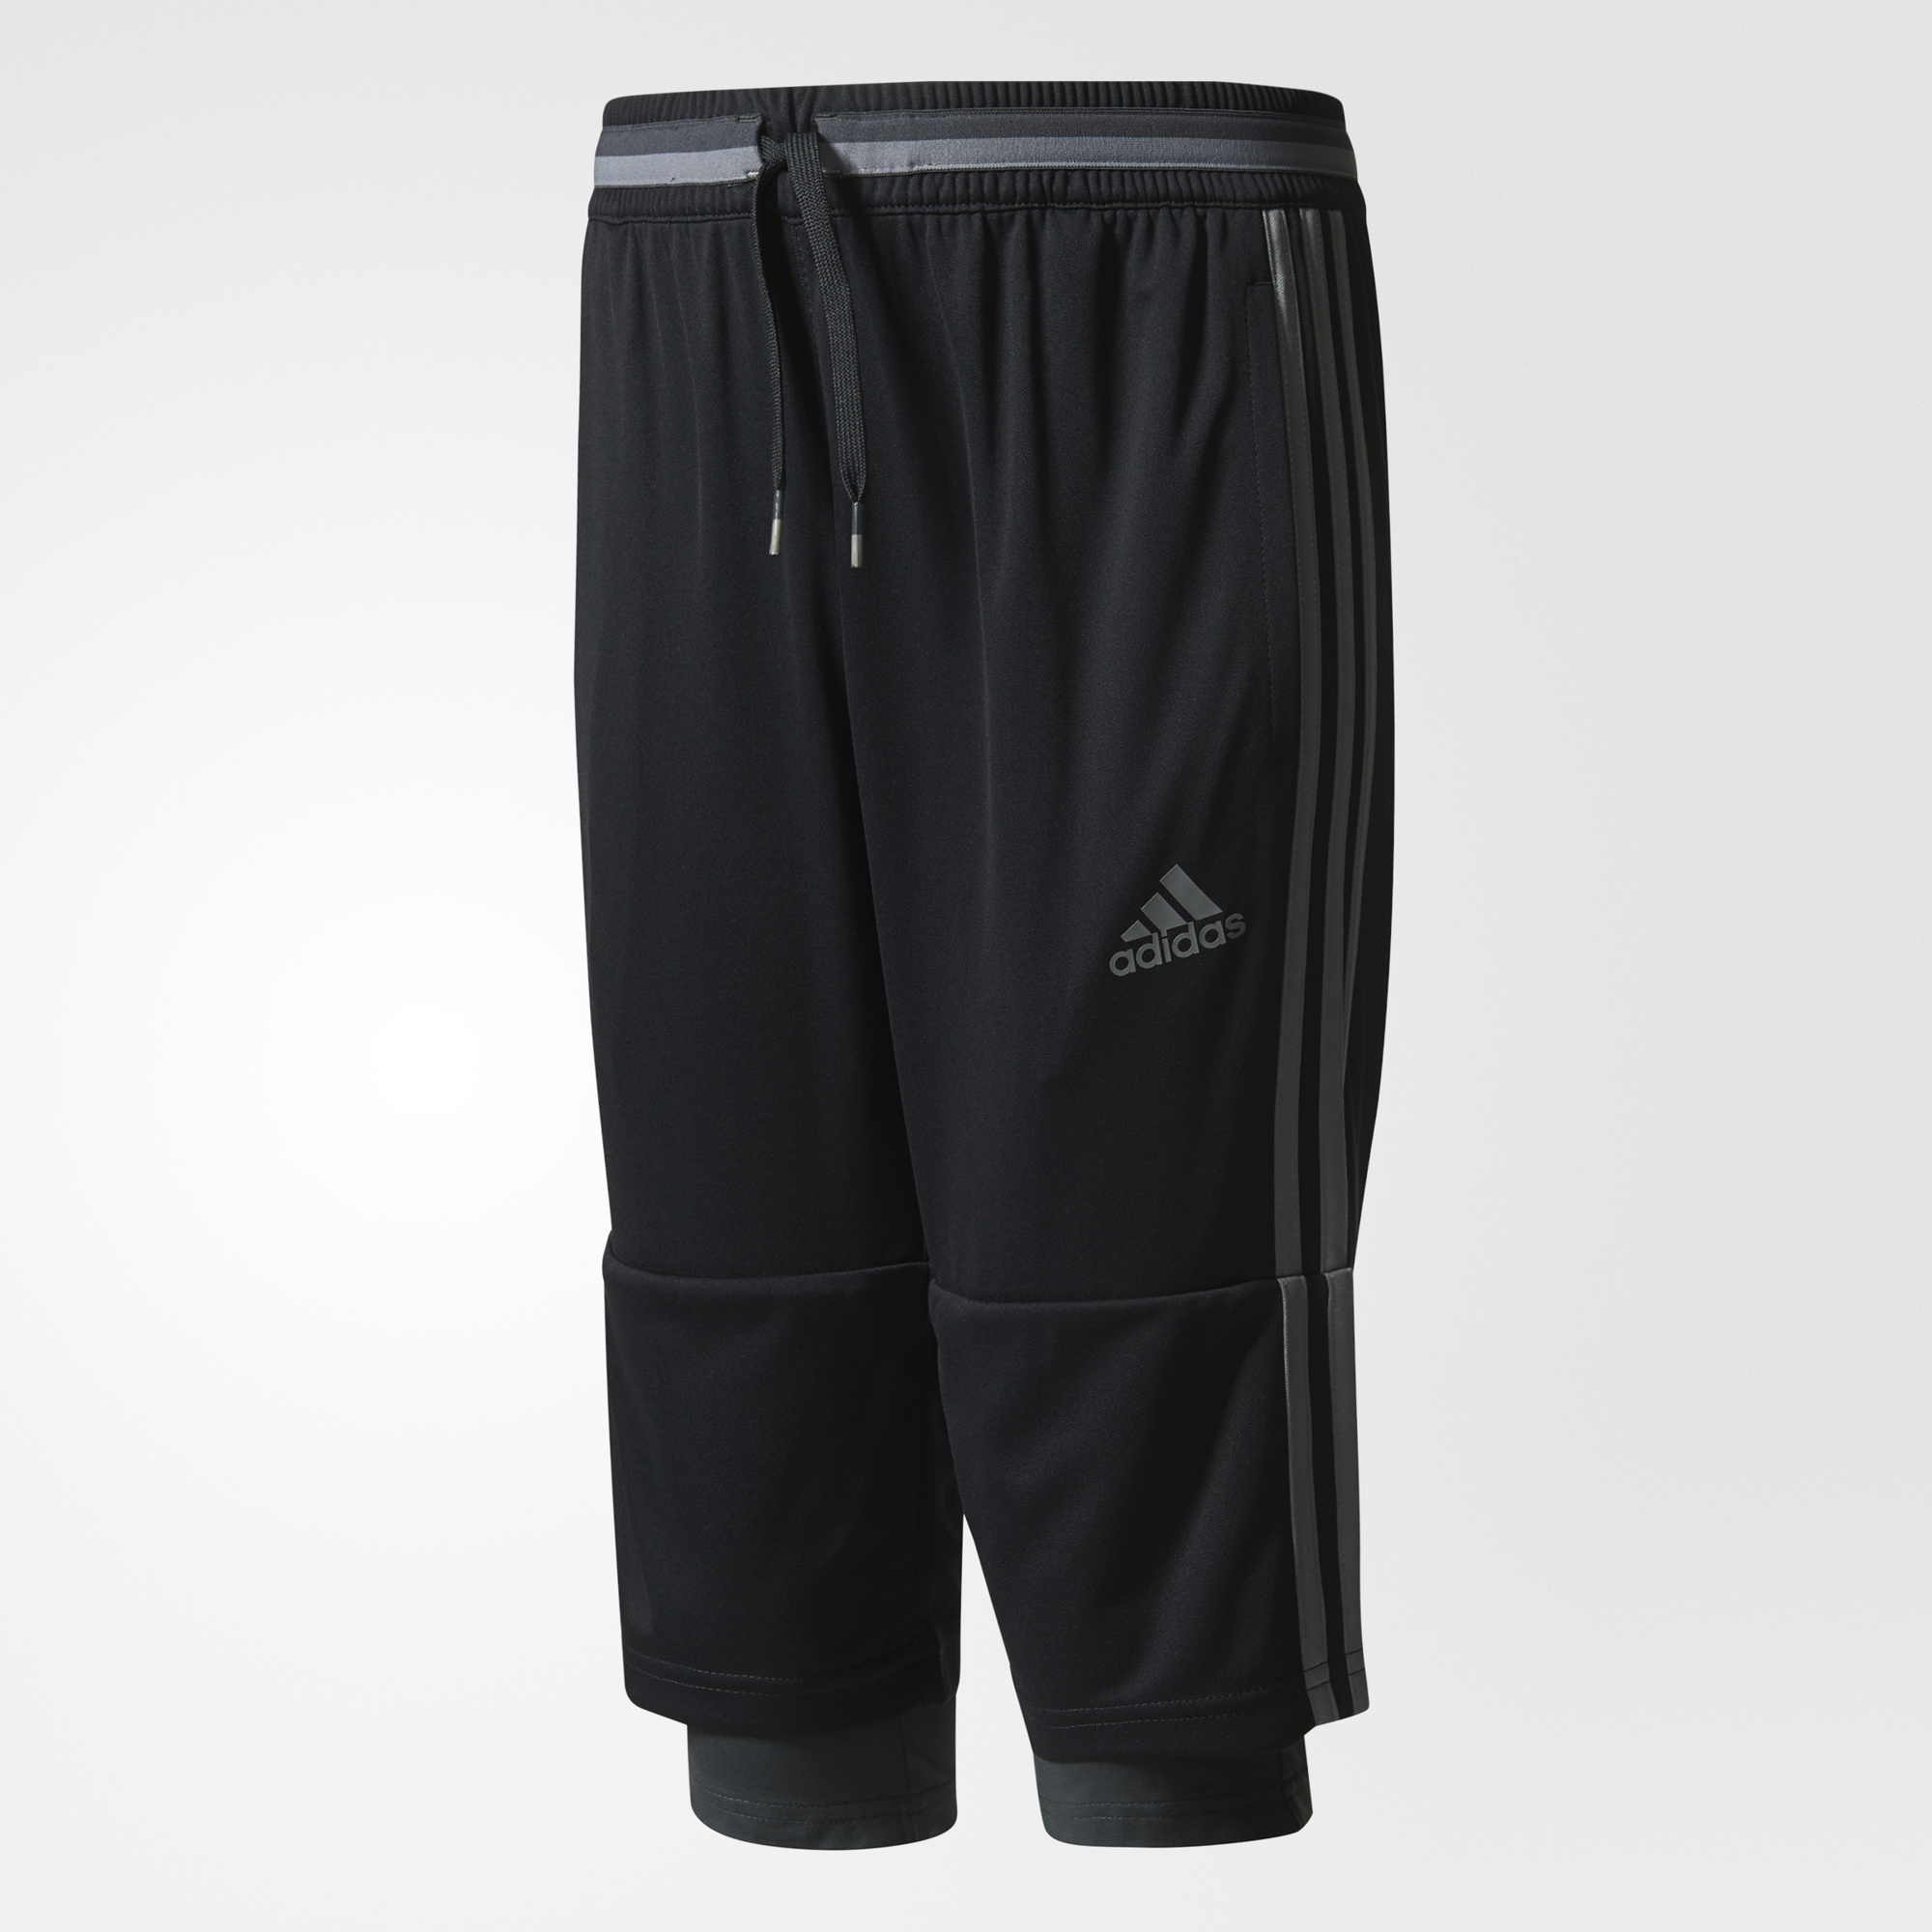 Pants 3/4 Adidas AN9847 sports and entertainment for boys